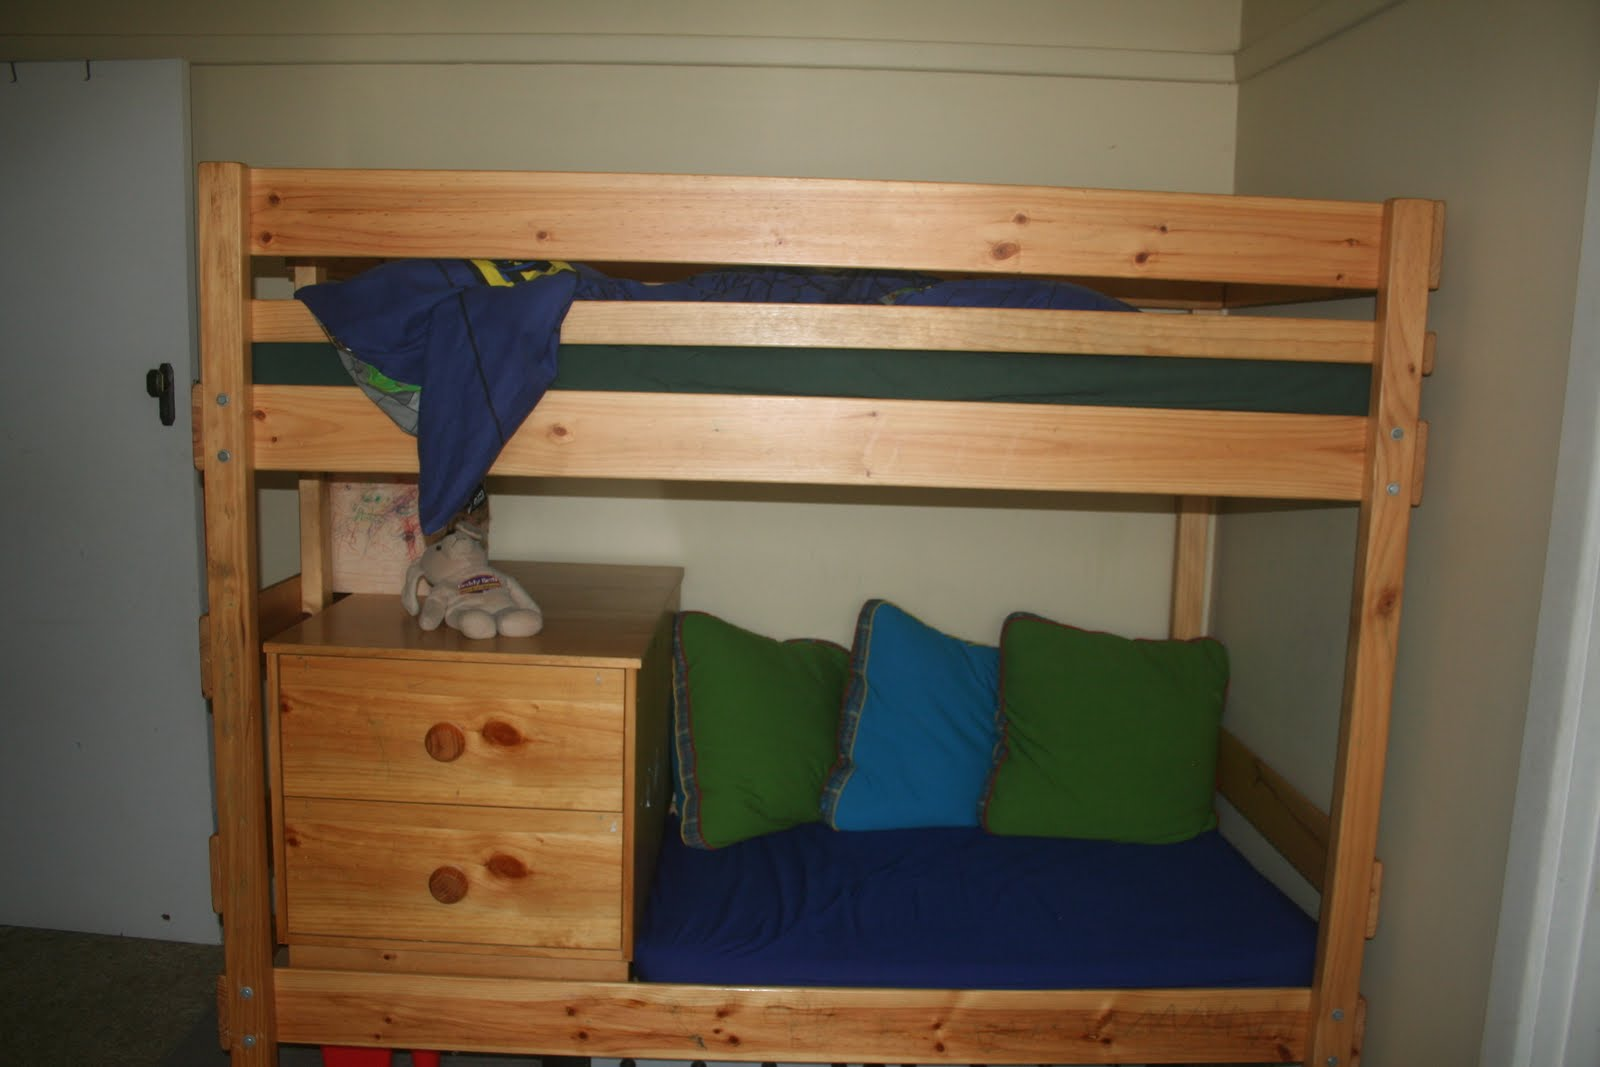 ... and Buddha on the bottom bunk, which used to be a full length single).